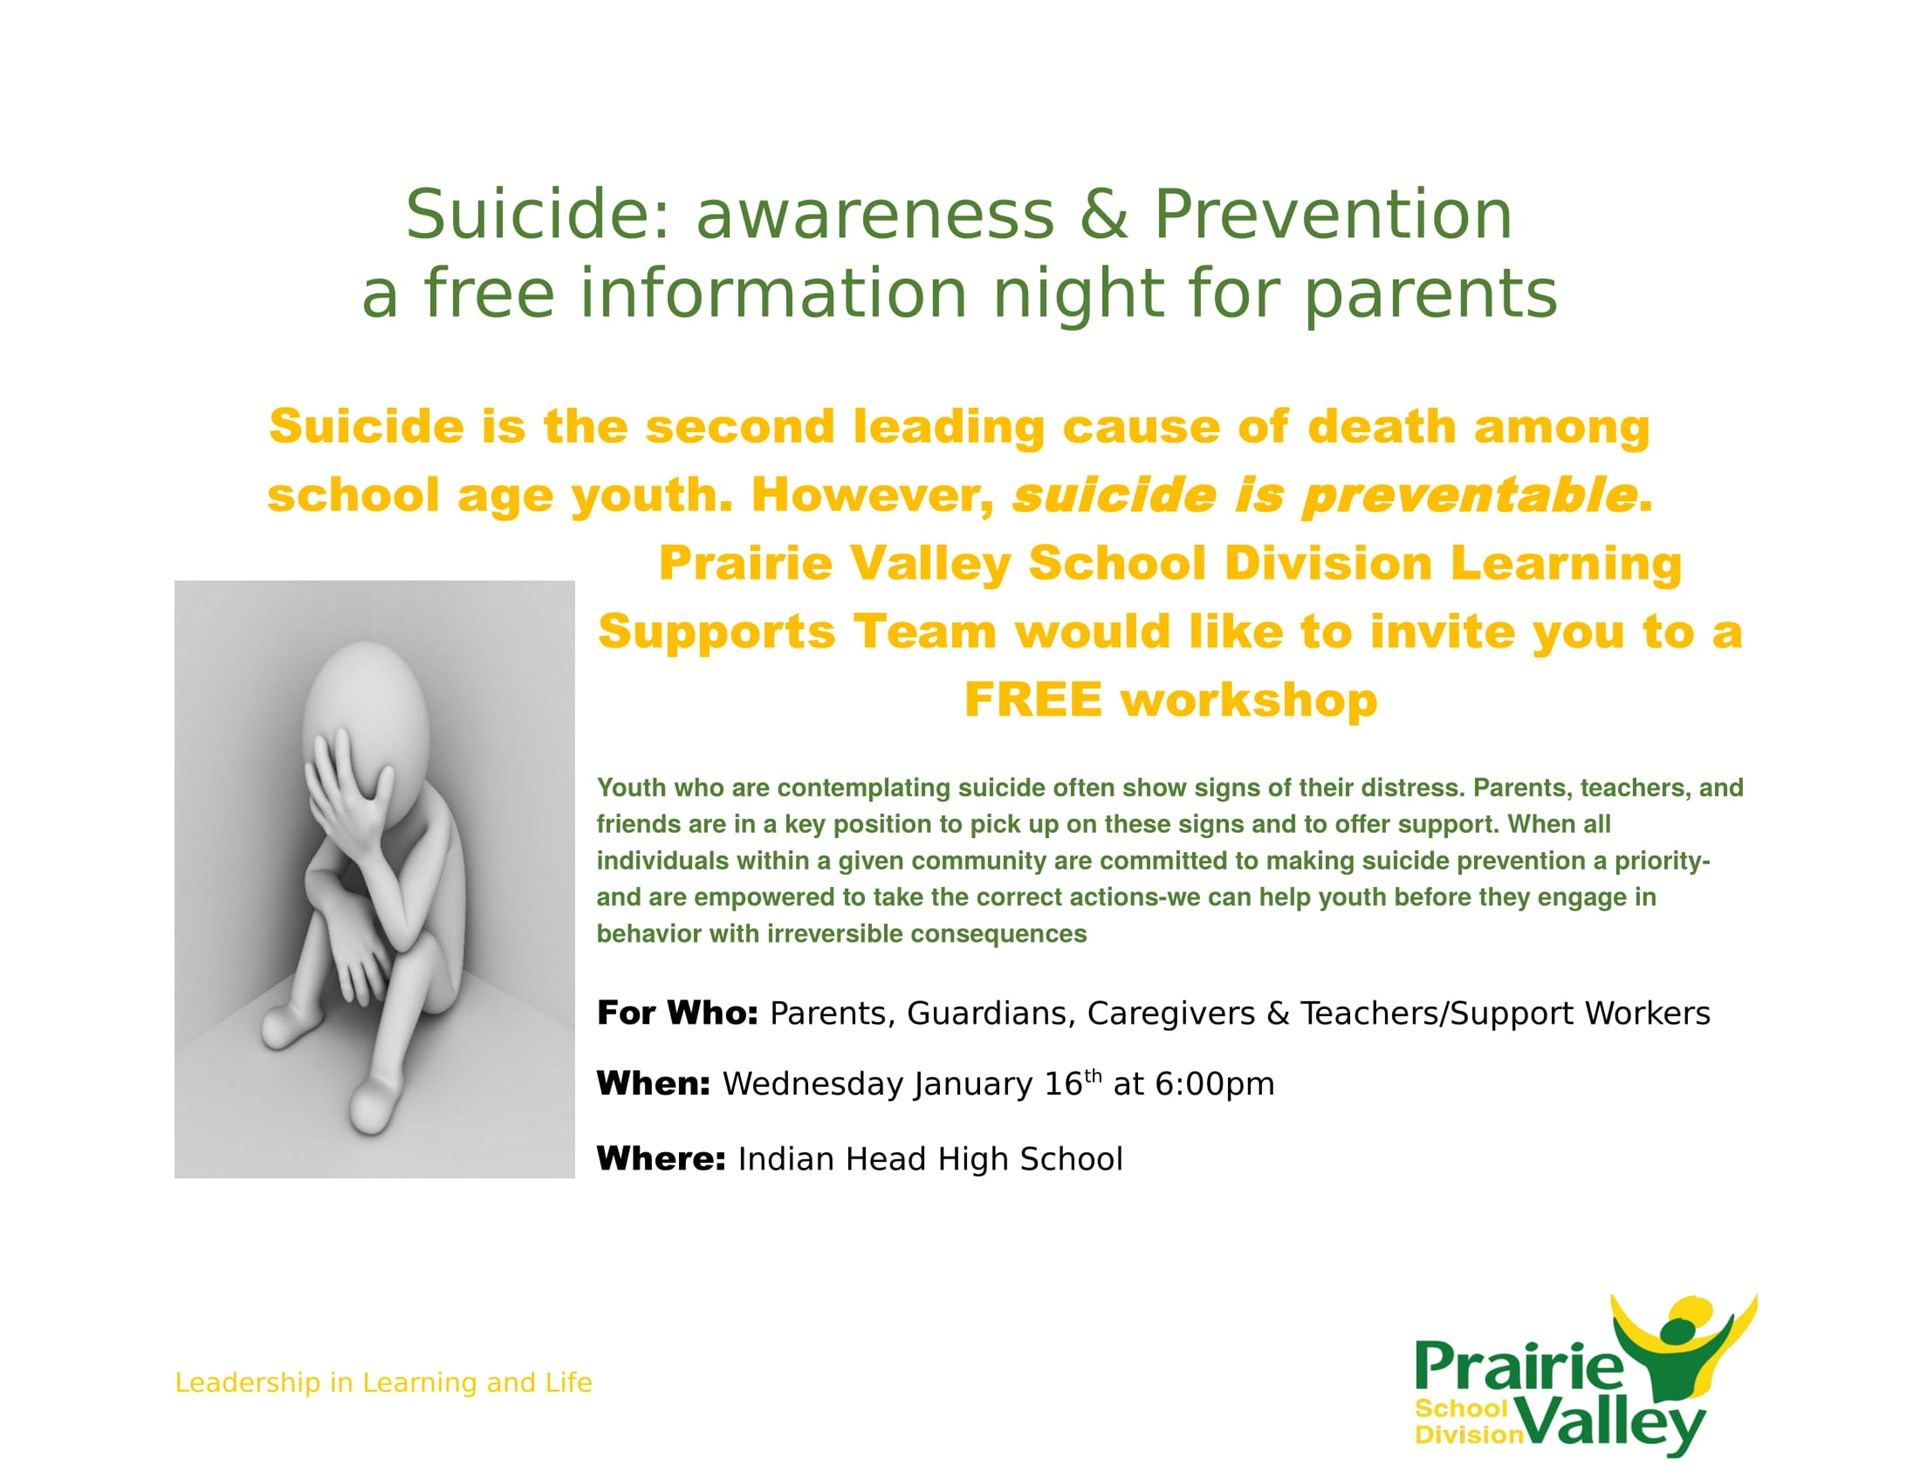 Suicide: Awareness and Prevention